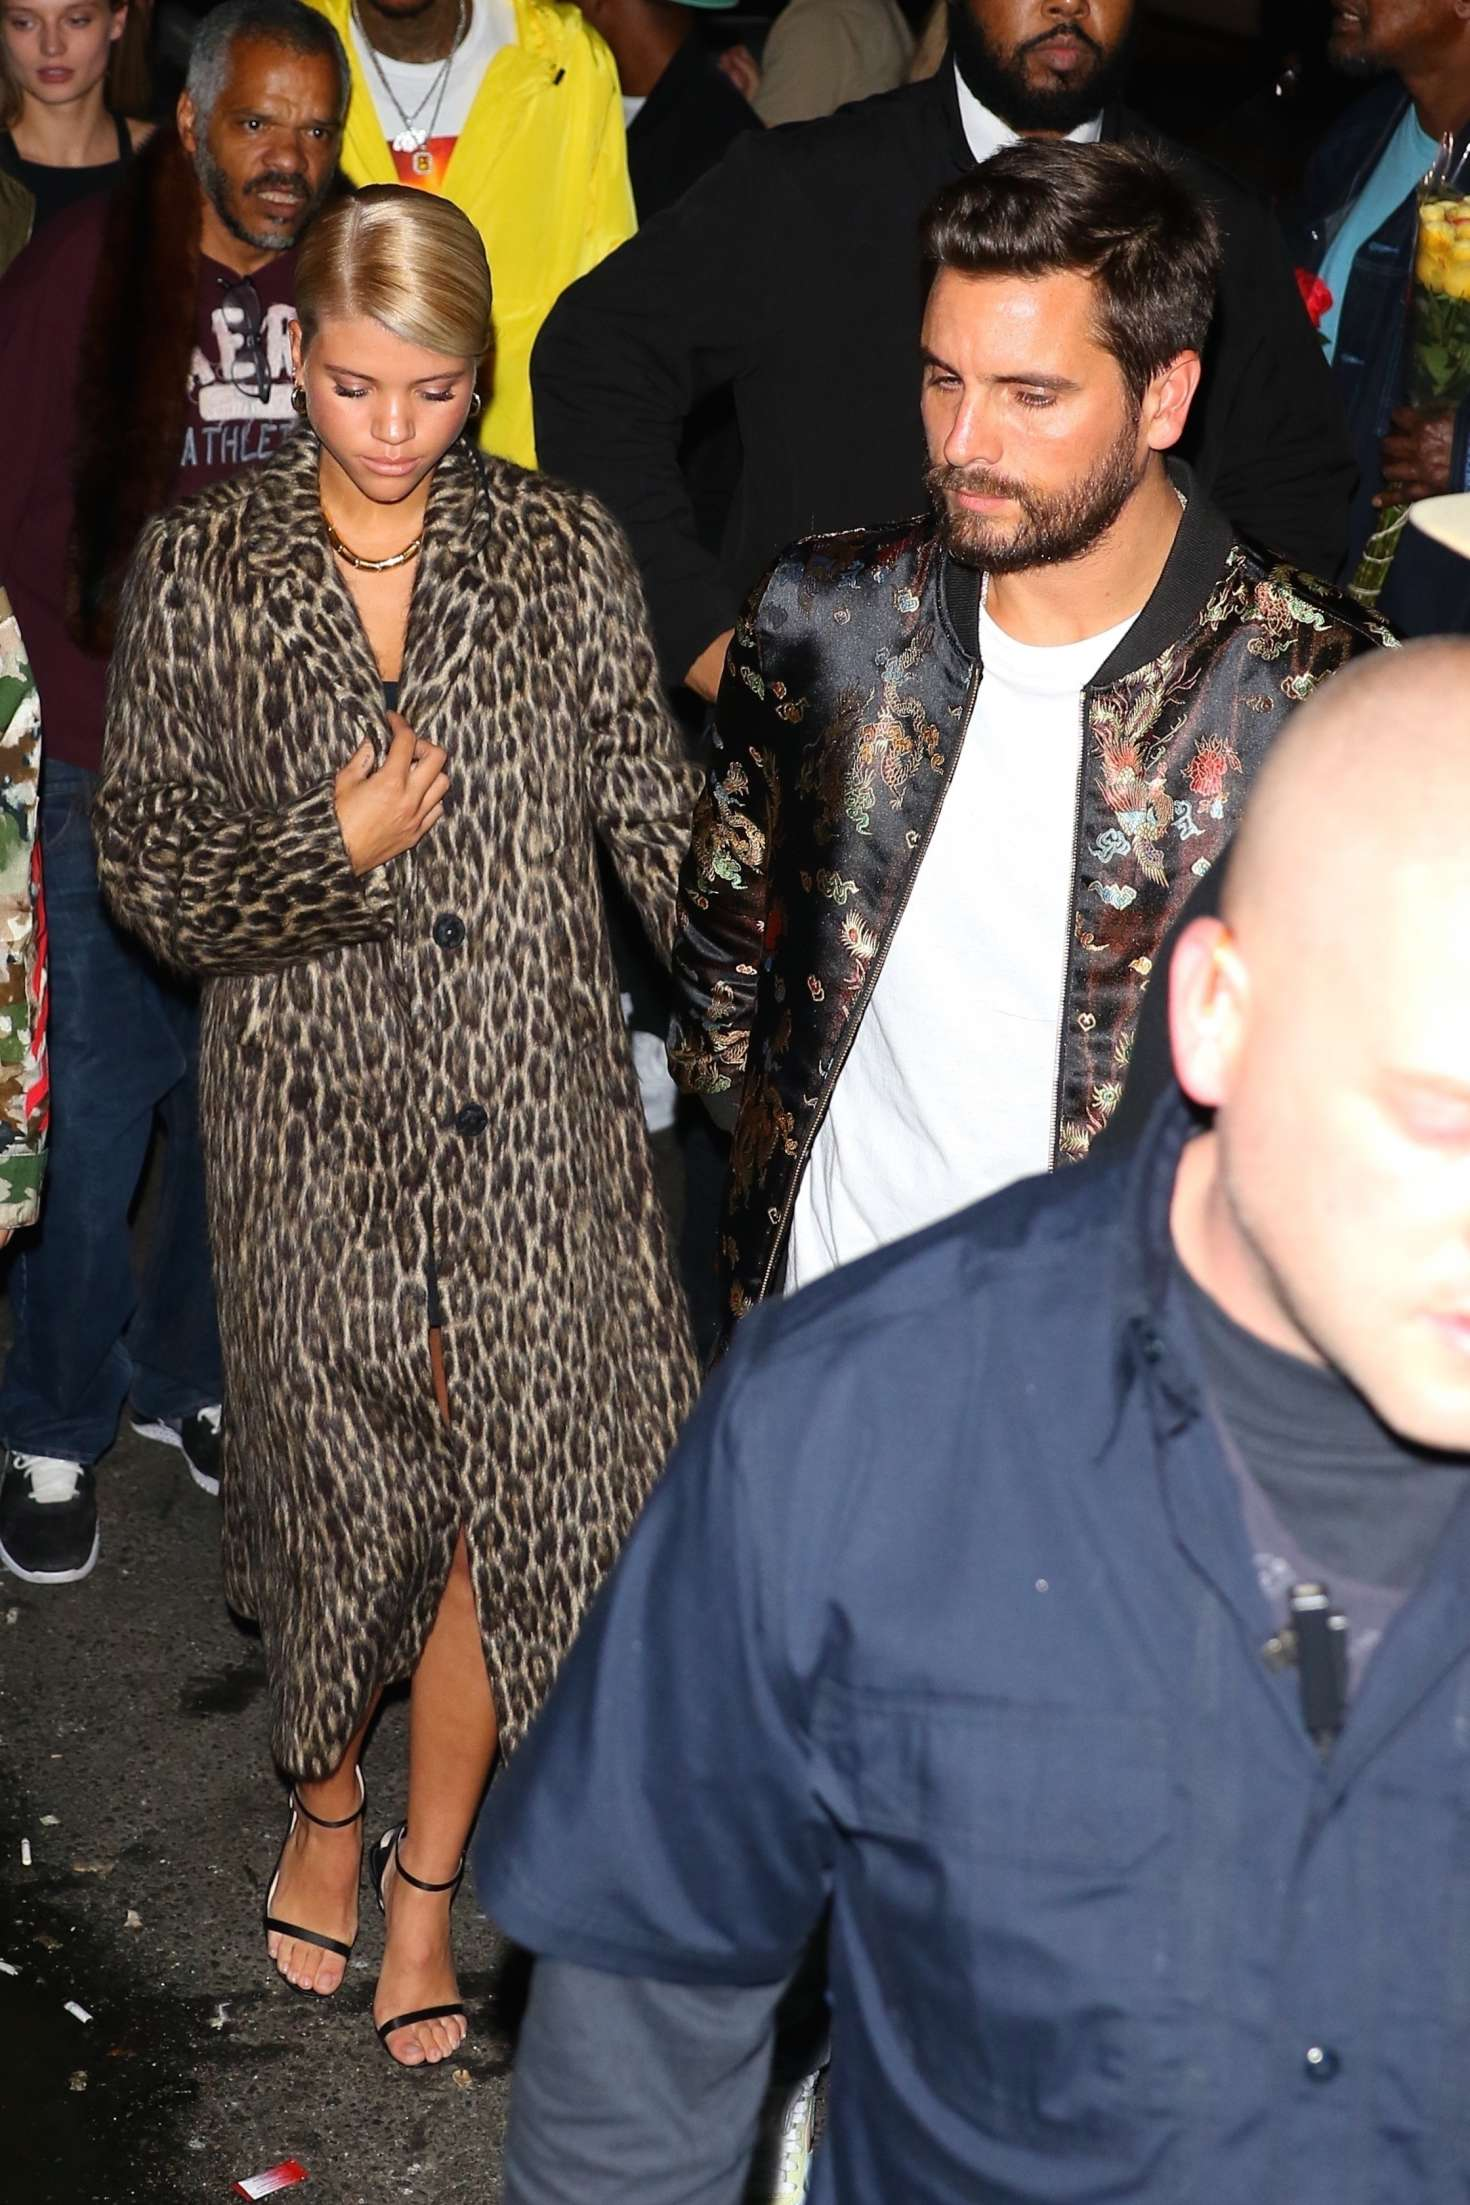 Sofia Richie out for the party in New York